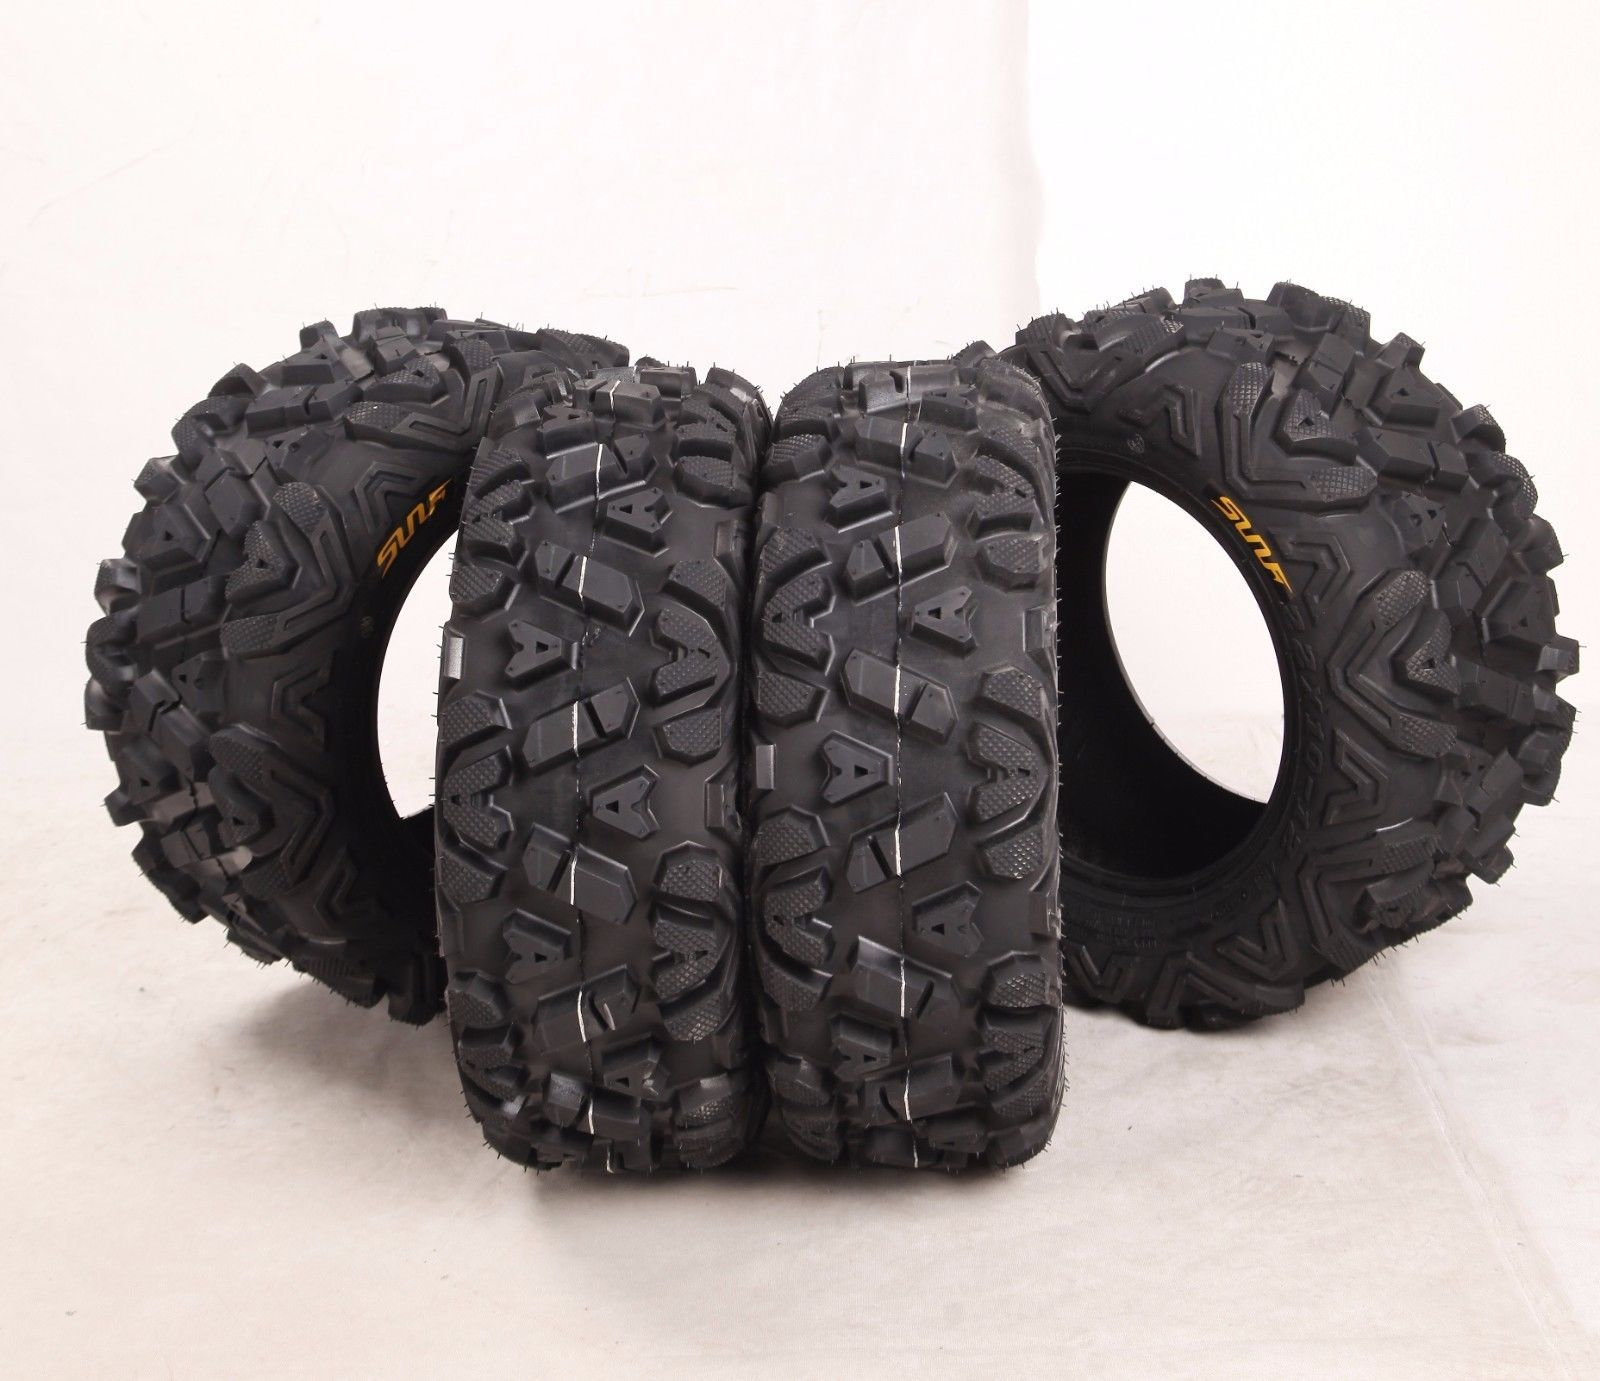 6 Ply New MASSFX MS ATV Tires 25x10-12 Rear Tire Set 4 25x8-12 Front 2 2